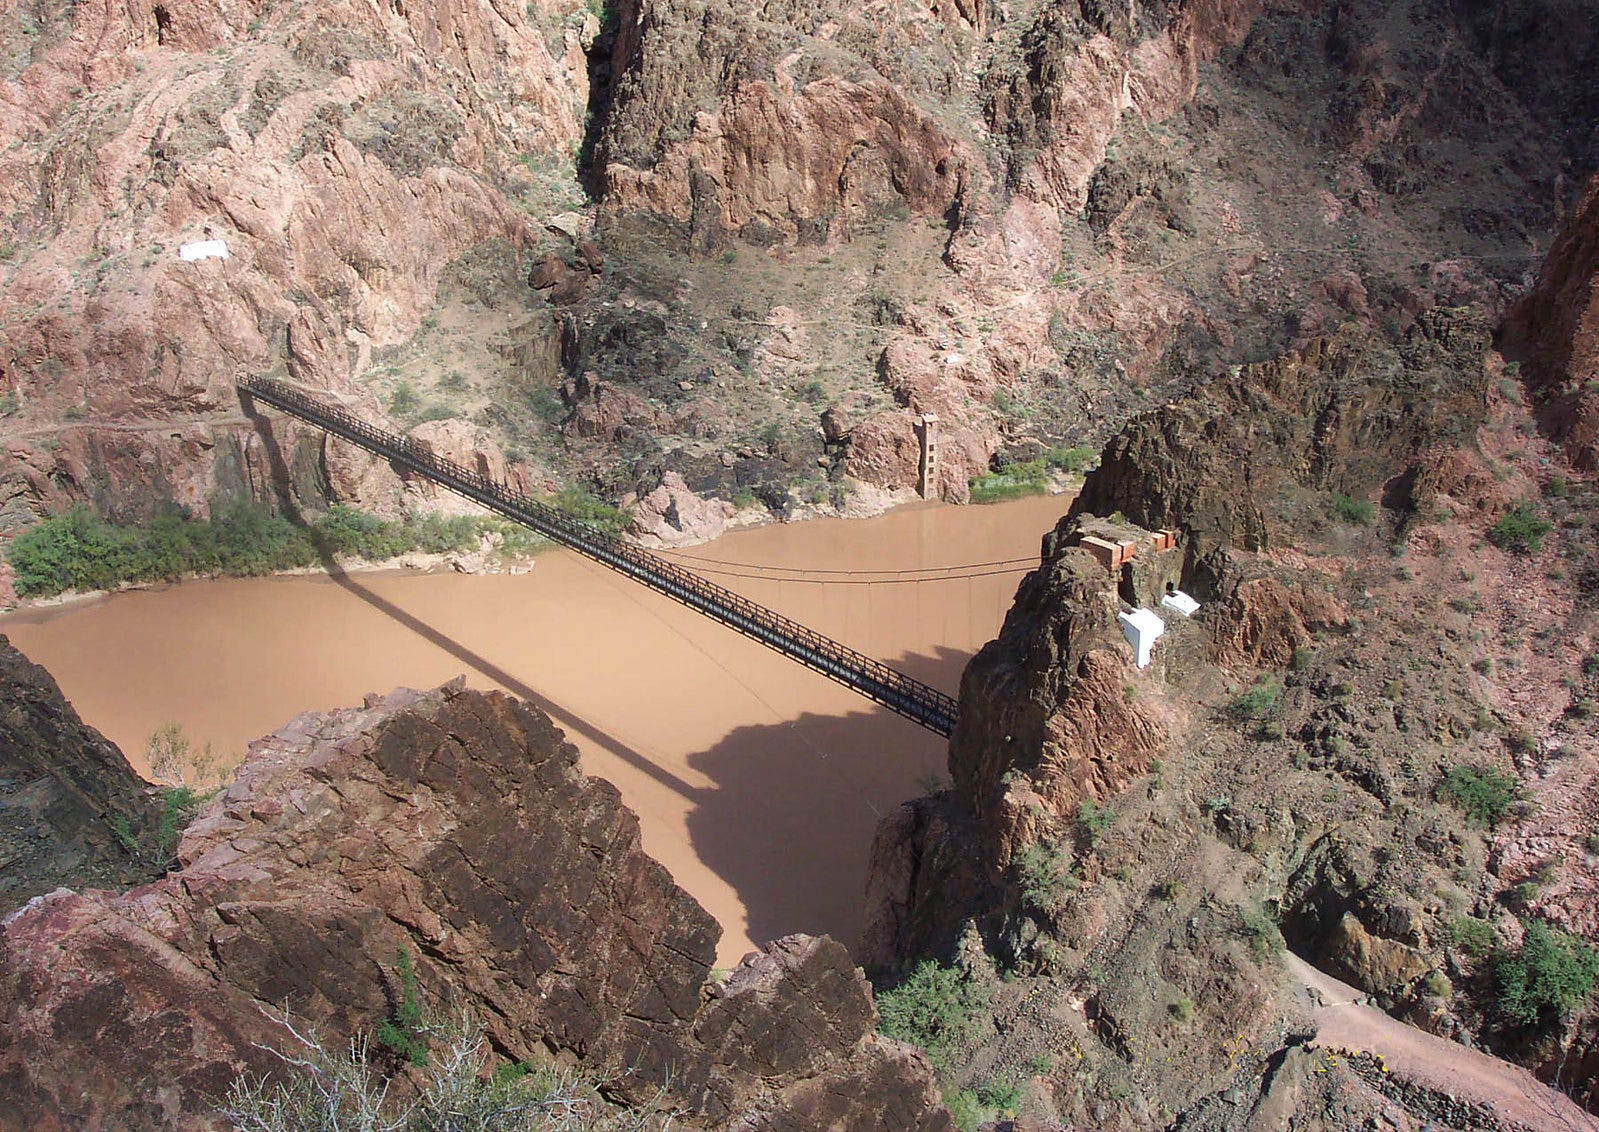 Phoenix hiker, 23, dies after falling 80 feet in Grand Canyon National Park